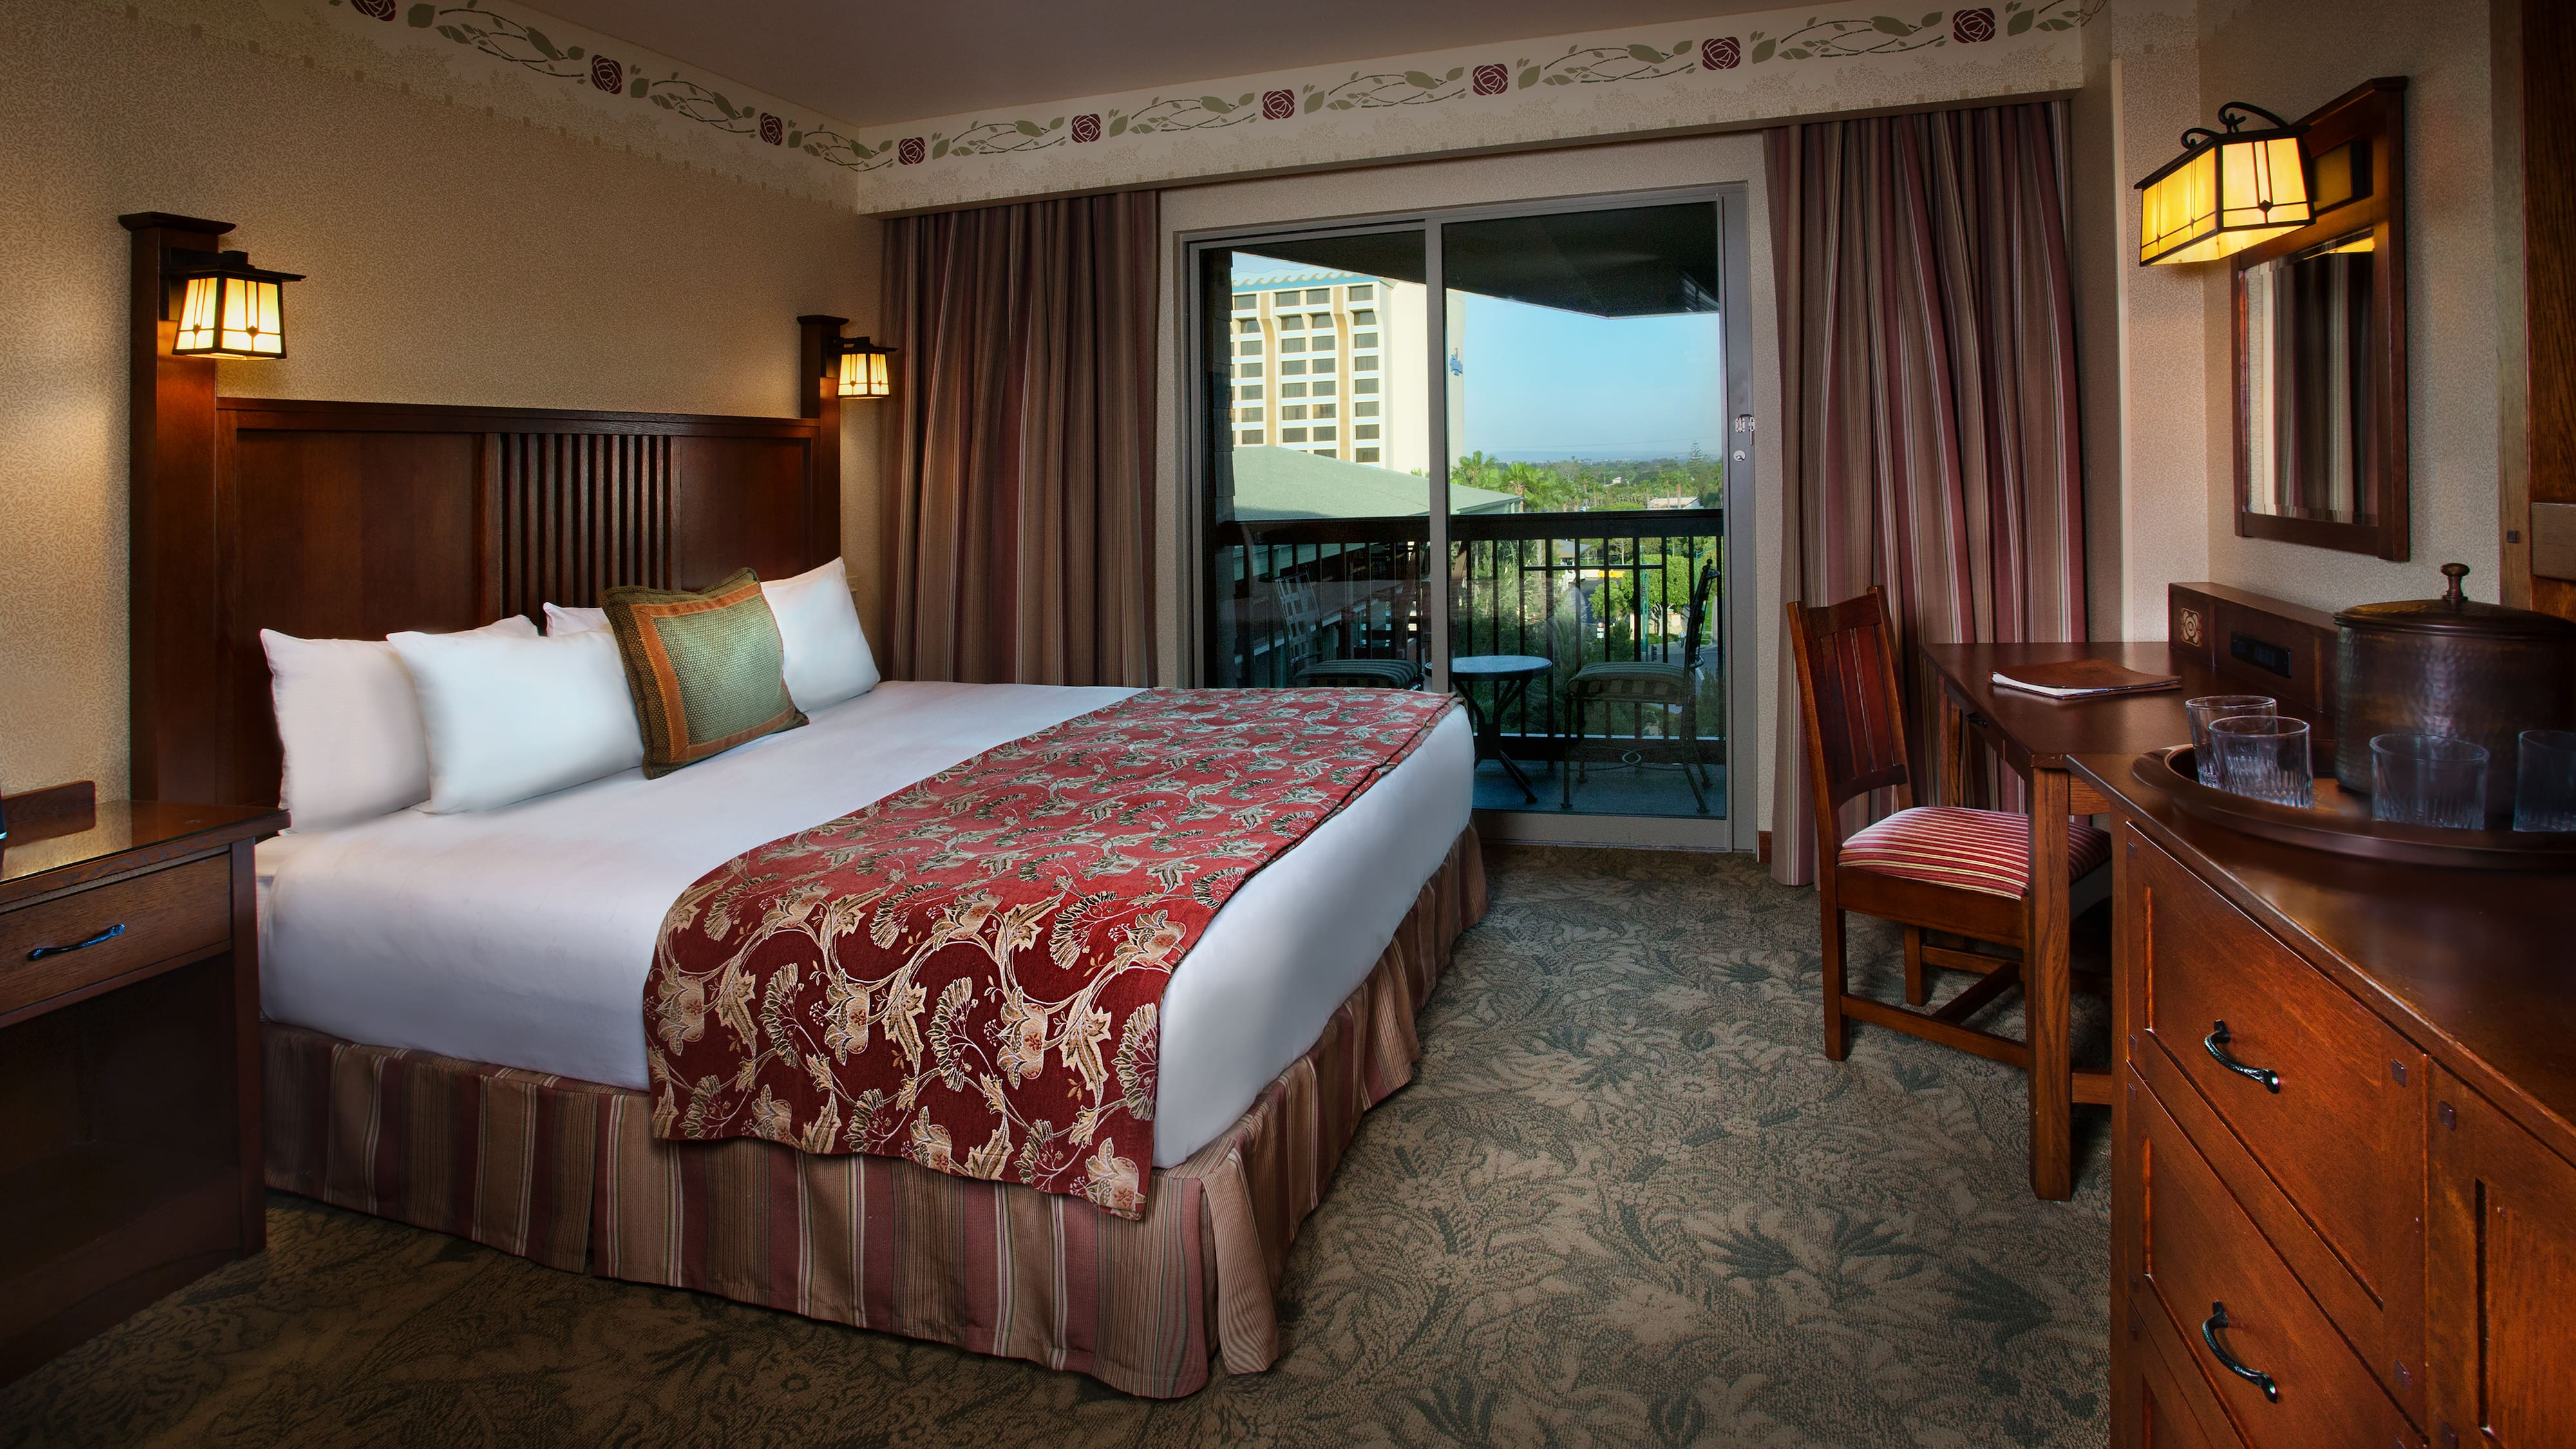 Rooms points the villas at disney 39 s grand californian - Disney grand californian 2 bedroom suite ...